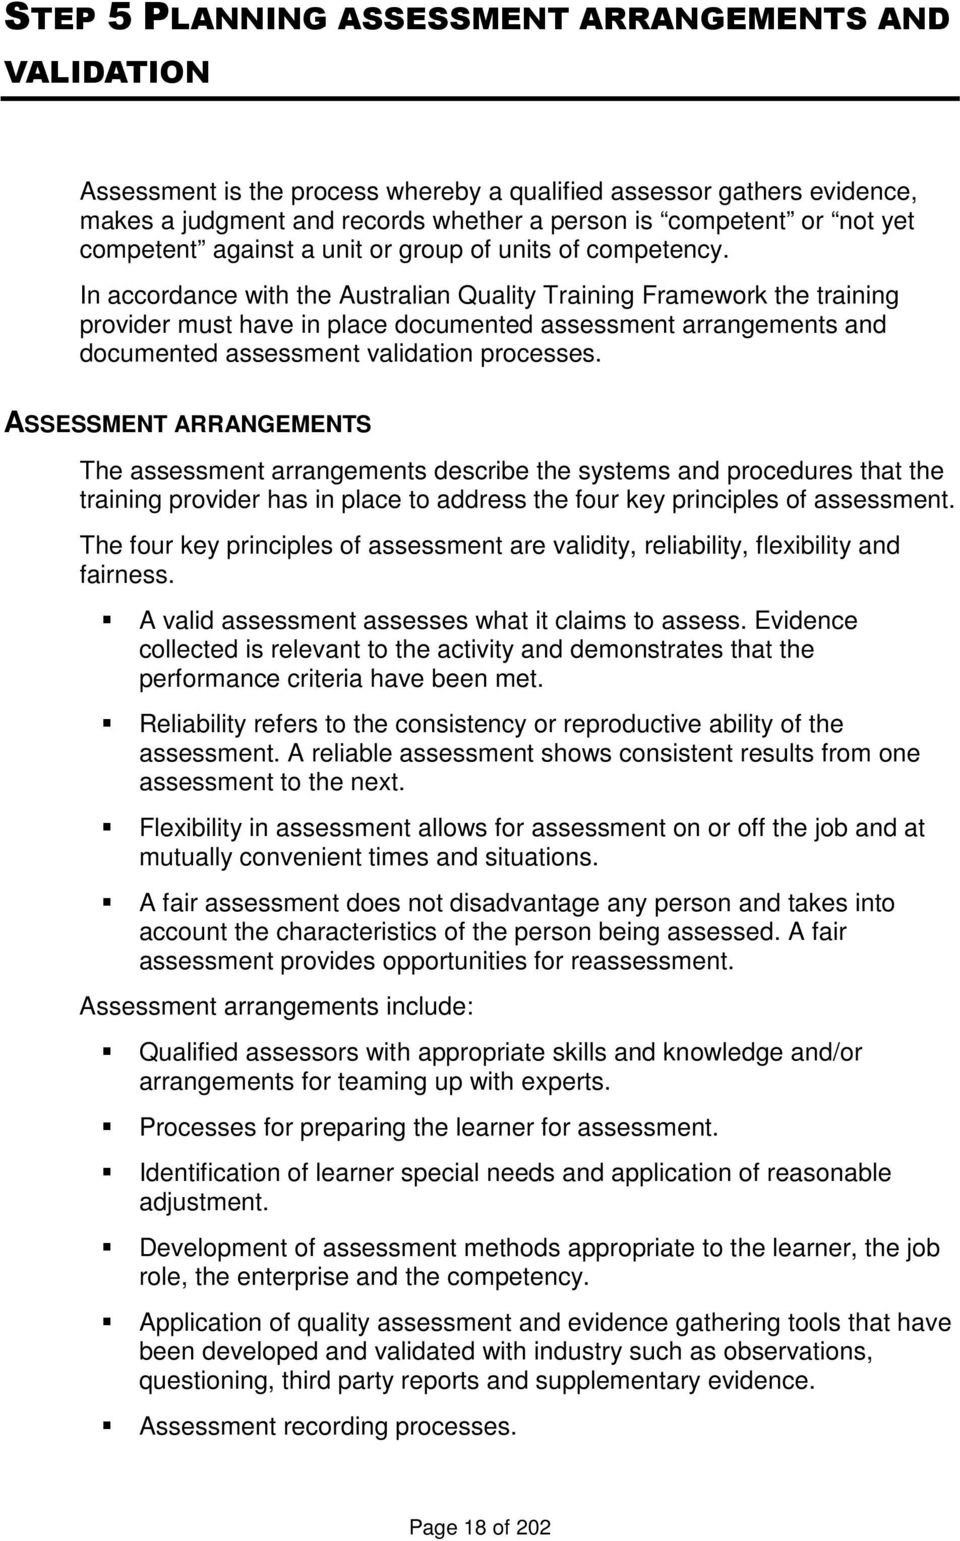 In accordance with the Australian Quality Training Framework the training provider must have in place documented assessment arrangements and documented assessment validation processes.